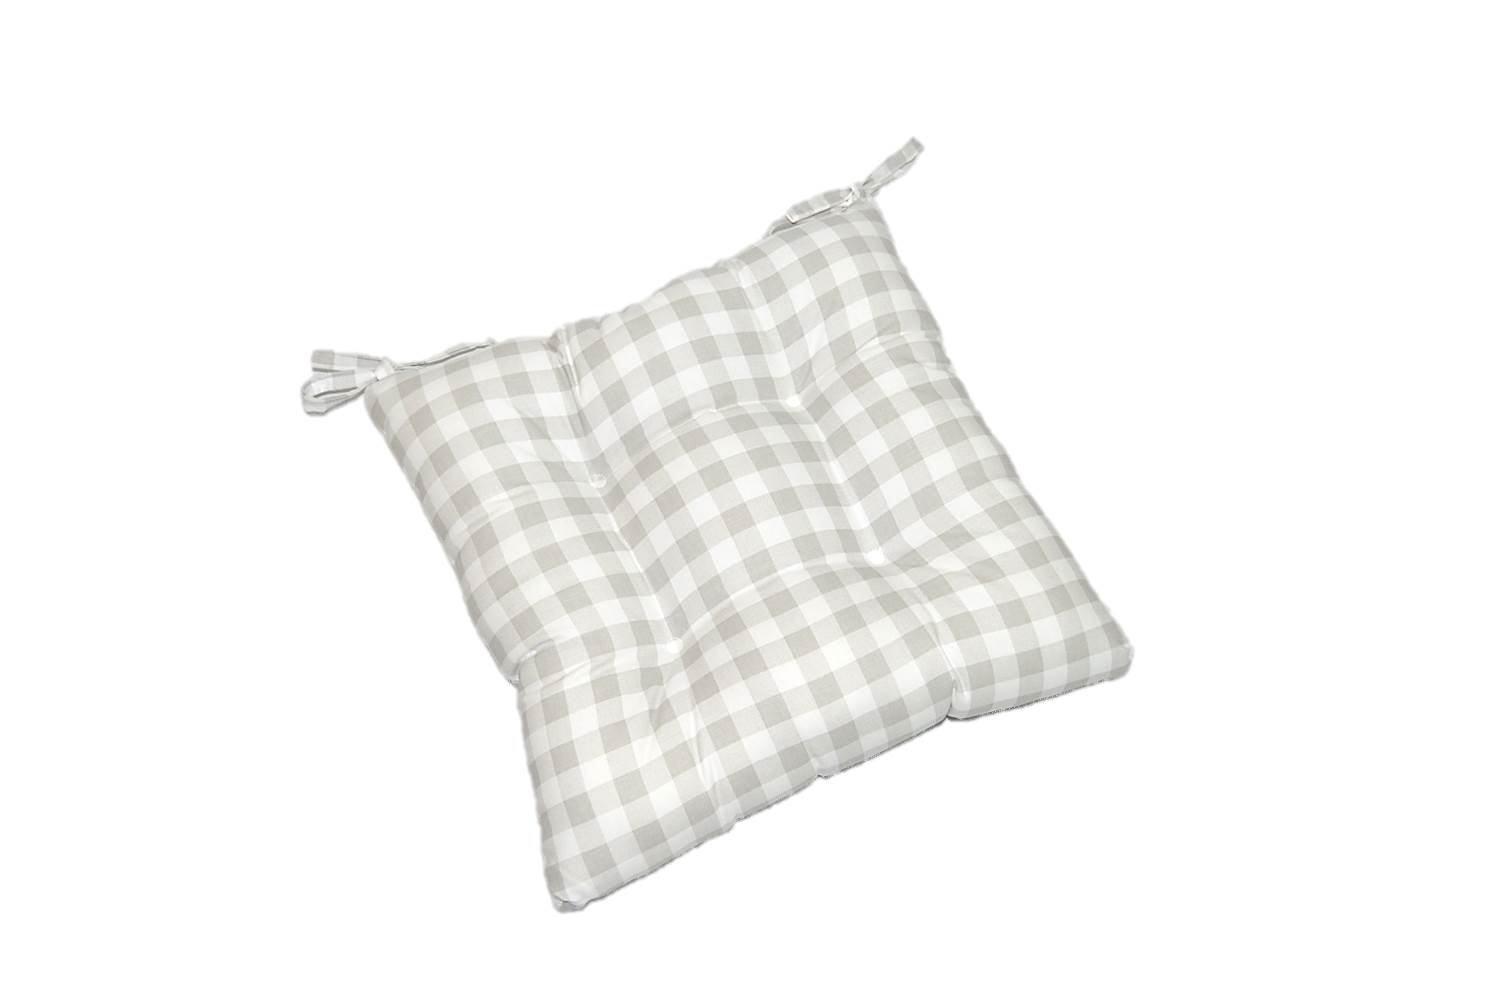 Indoor Cotton Gray / Grey and White Plaid Country Checkerboard / Checkered Universal Tufted Seat Cushion with Ties for Dining / Kitchen Chair - Choose Size (17''w x 15''d)